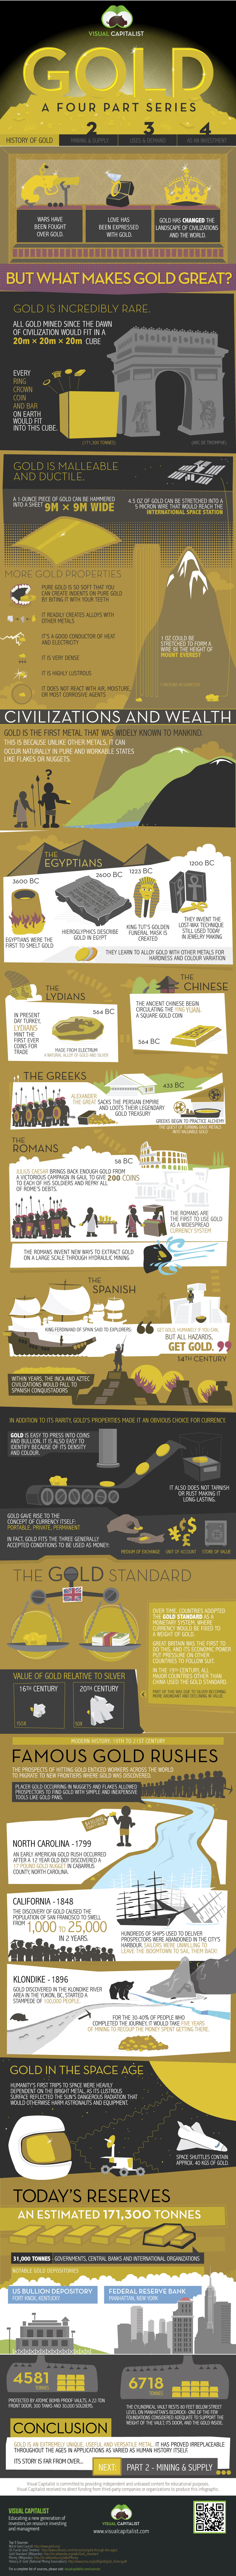 History of Gold infographic